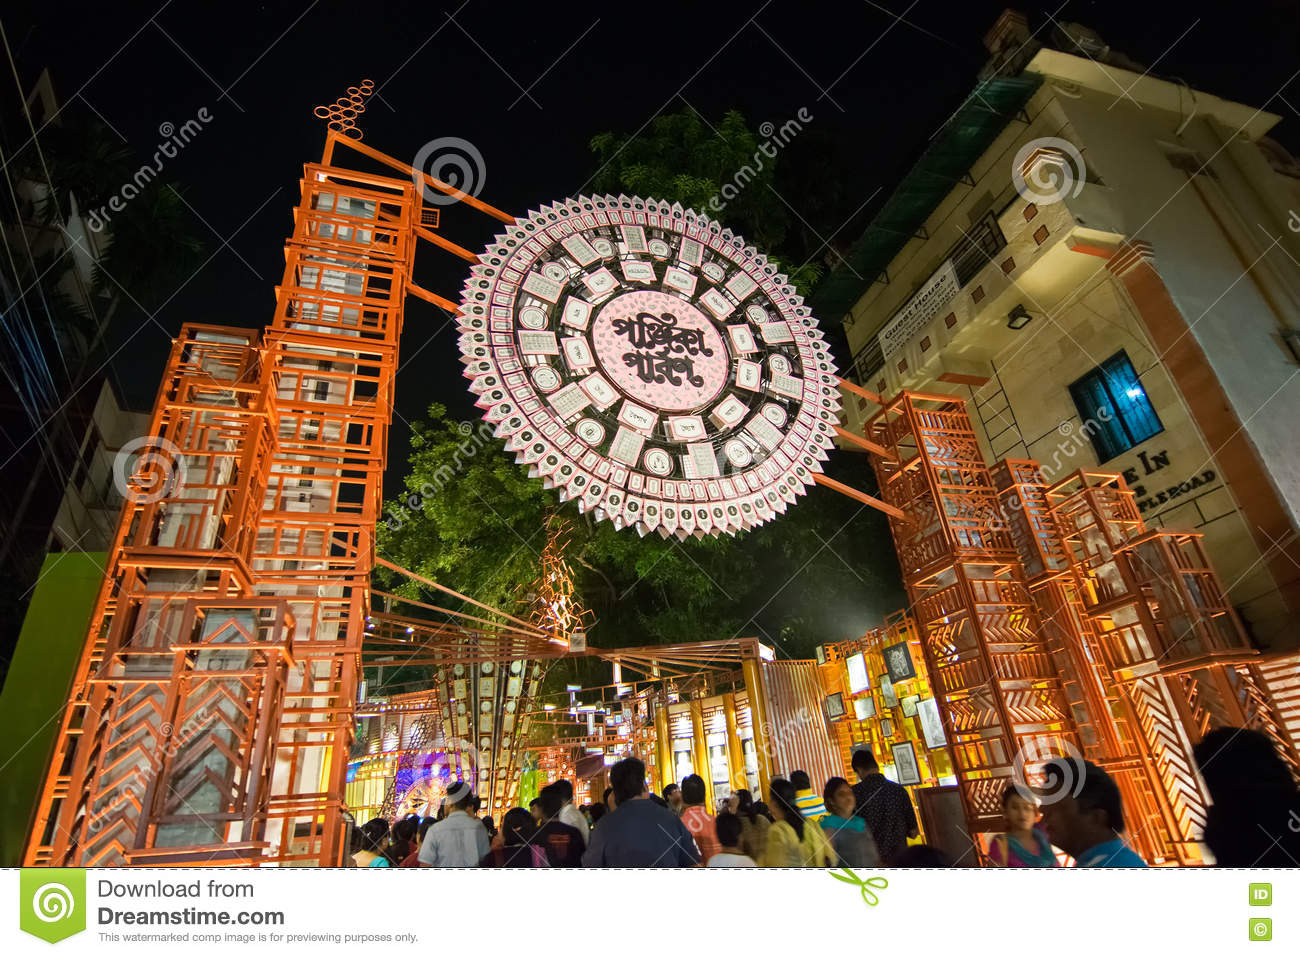 Night image of durga puja pandal kolkata west bengal india night image of durga puja pandal kolkata west bengal india editorial image image of exterior durga 74558000 thecheapjerseys Images